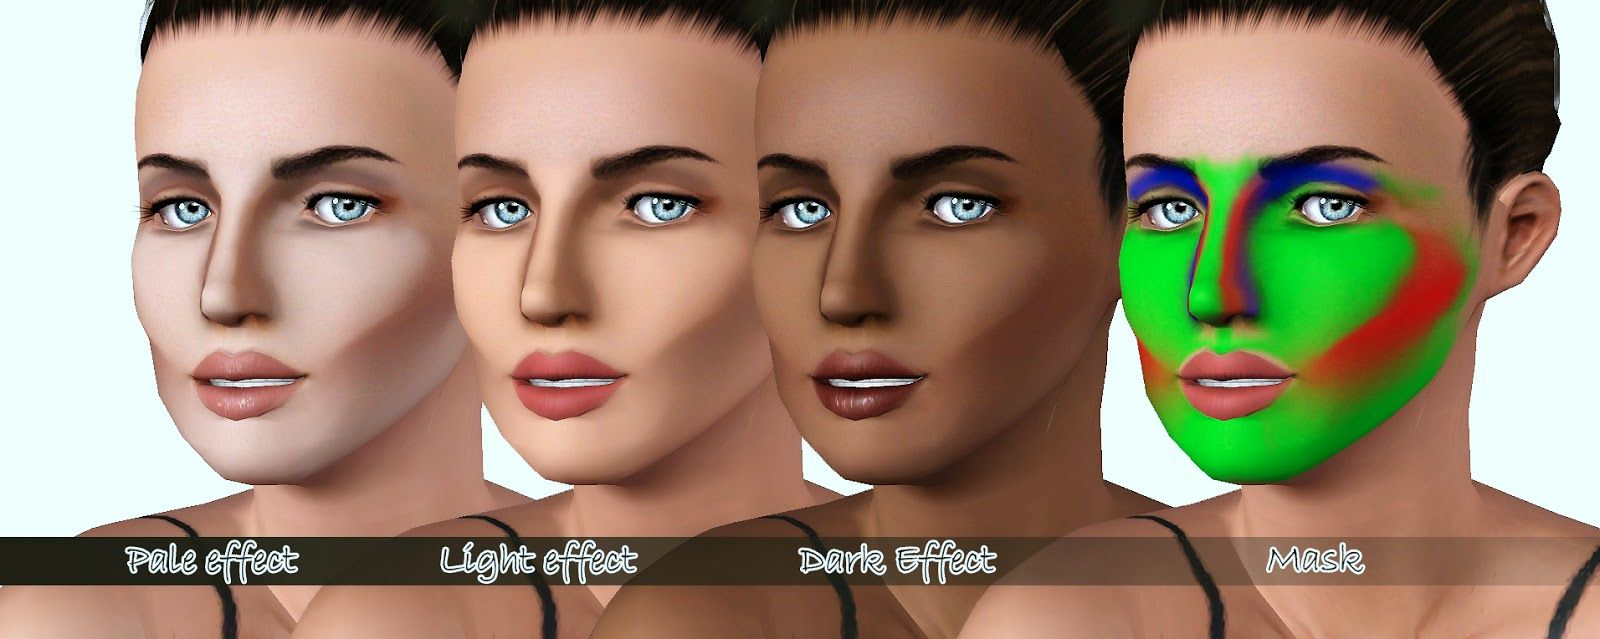 My Sims 3 Blog: Full Face Contouring Blush by Cleos